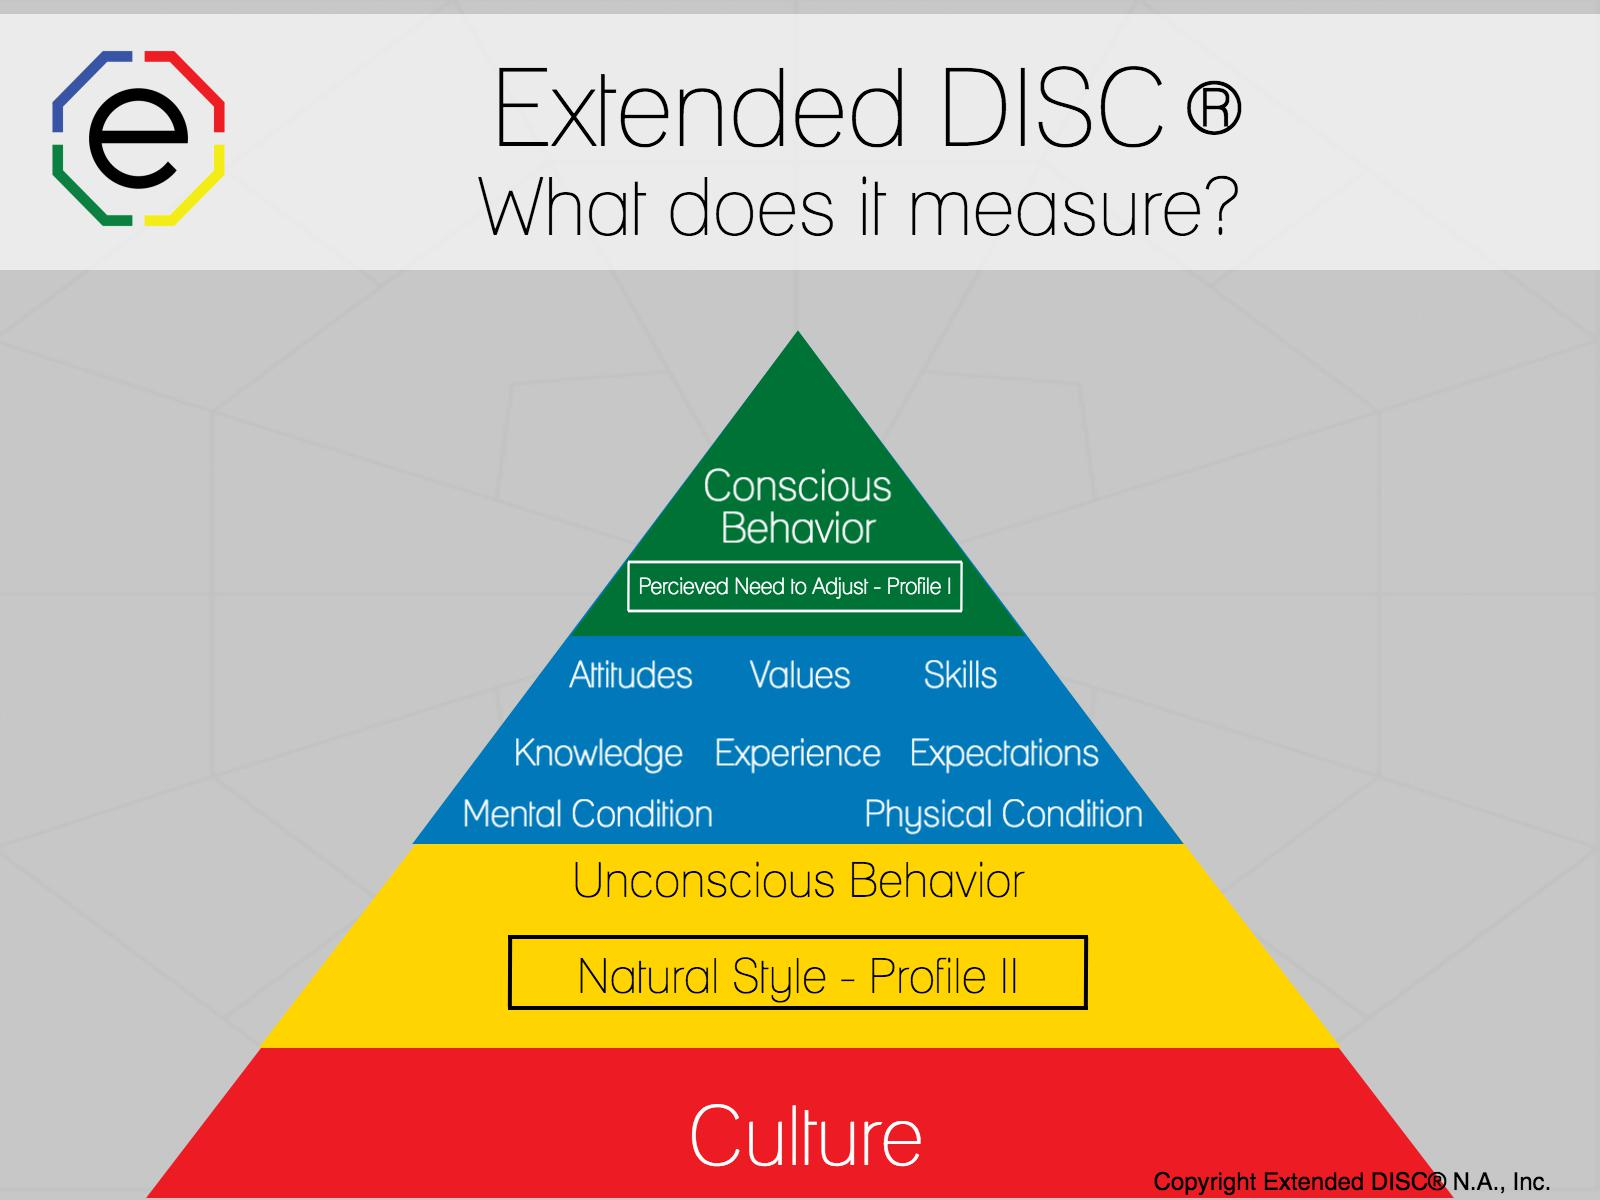 Extended DISC: What Does it Measure?